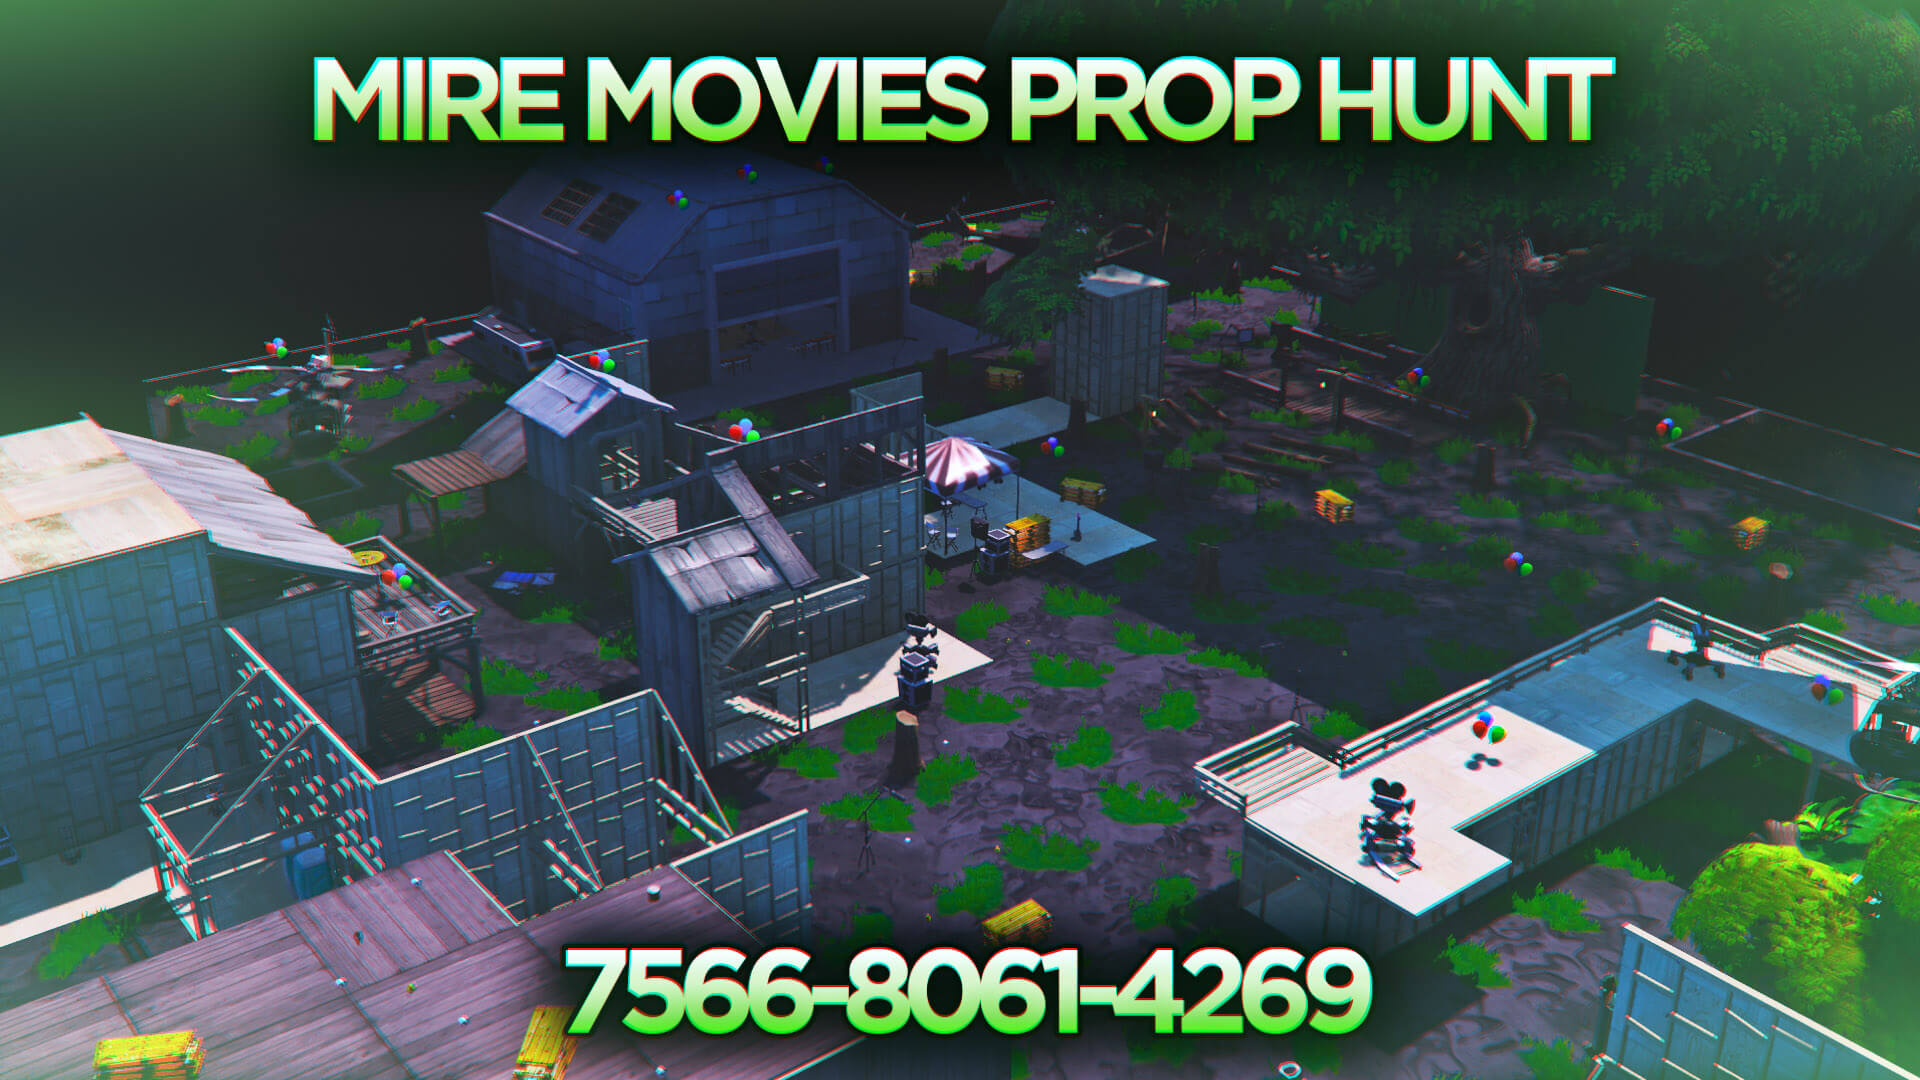 MIRE MOVIES PROP HUNT